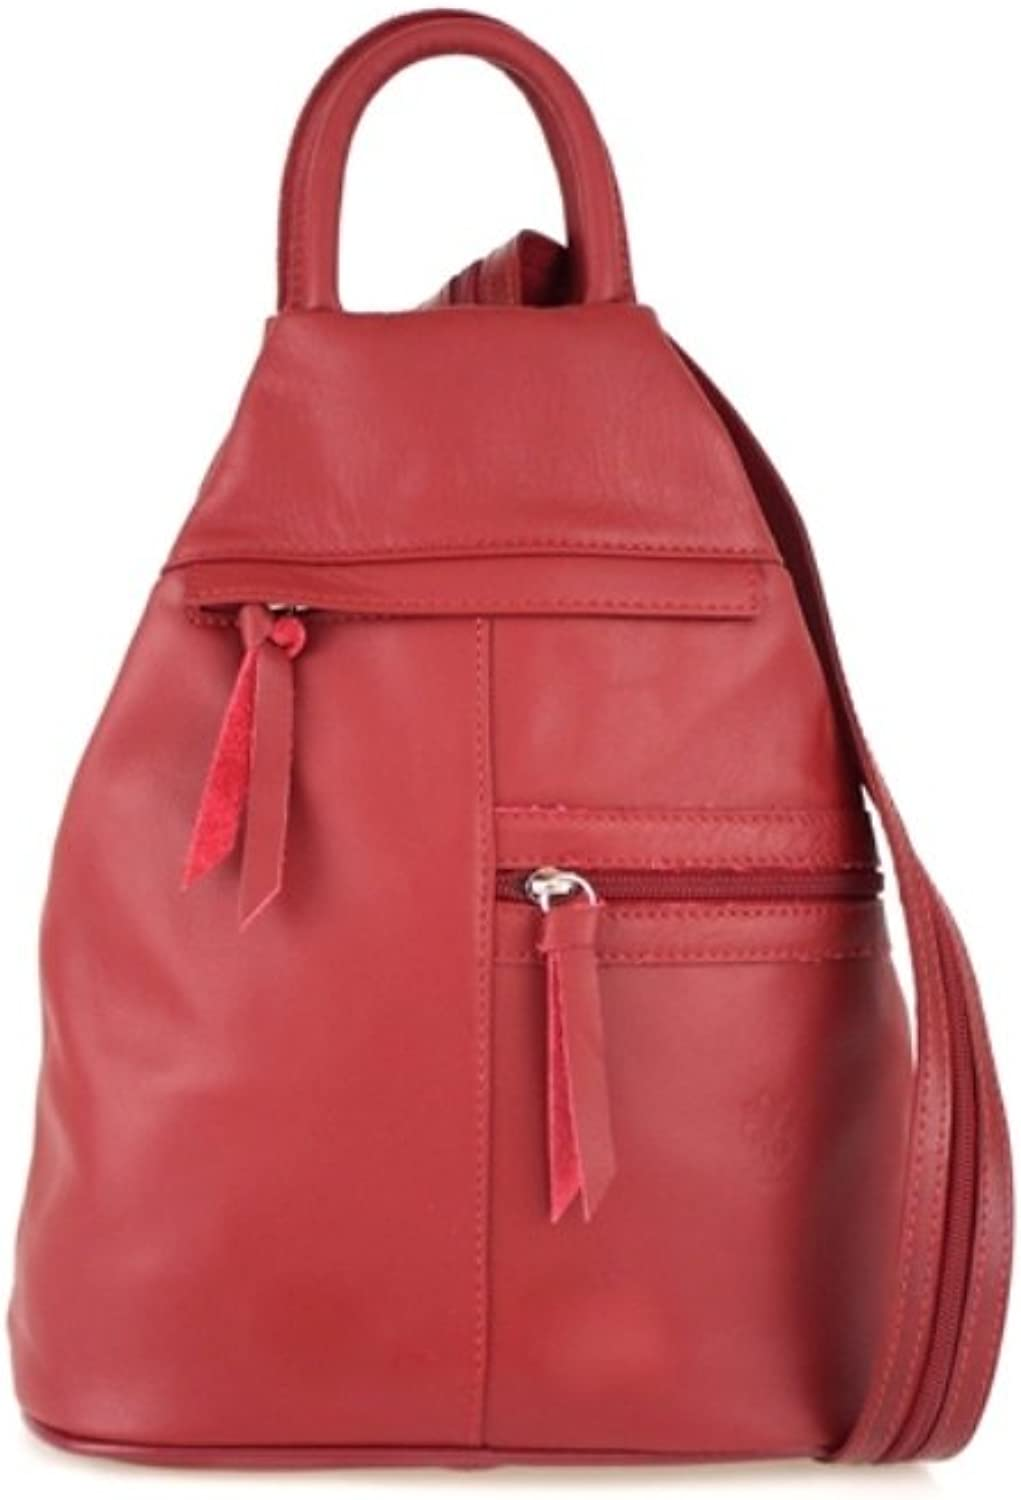 ZETA SHOES Women's Genuine Leather Backpack Made in  Handmade 25x30x14 MainApps